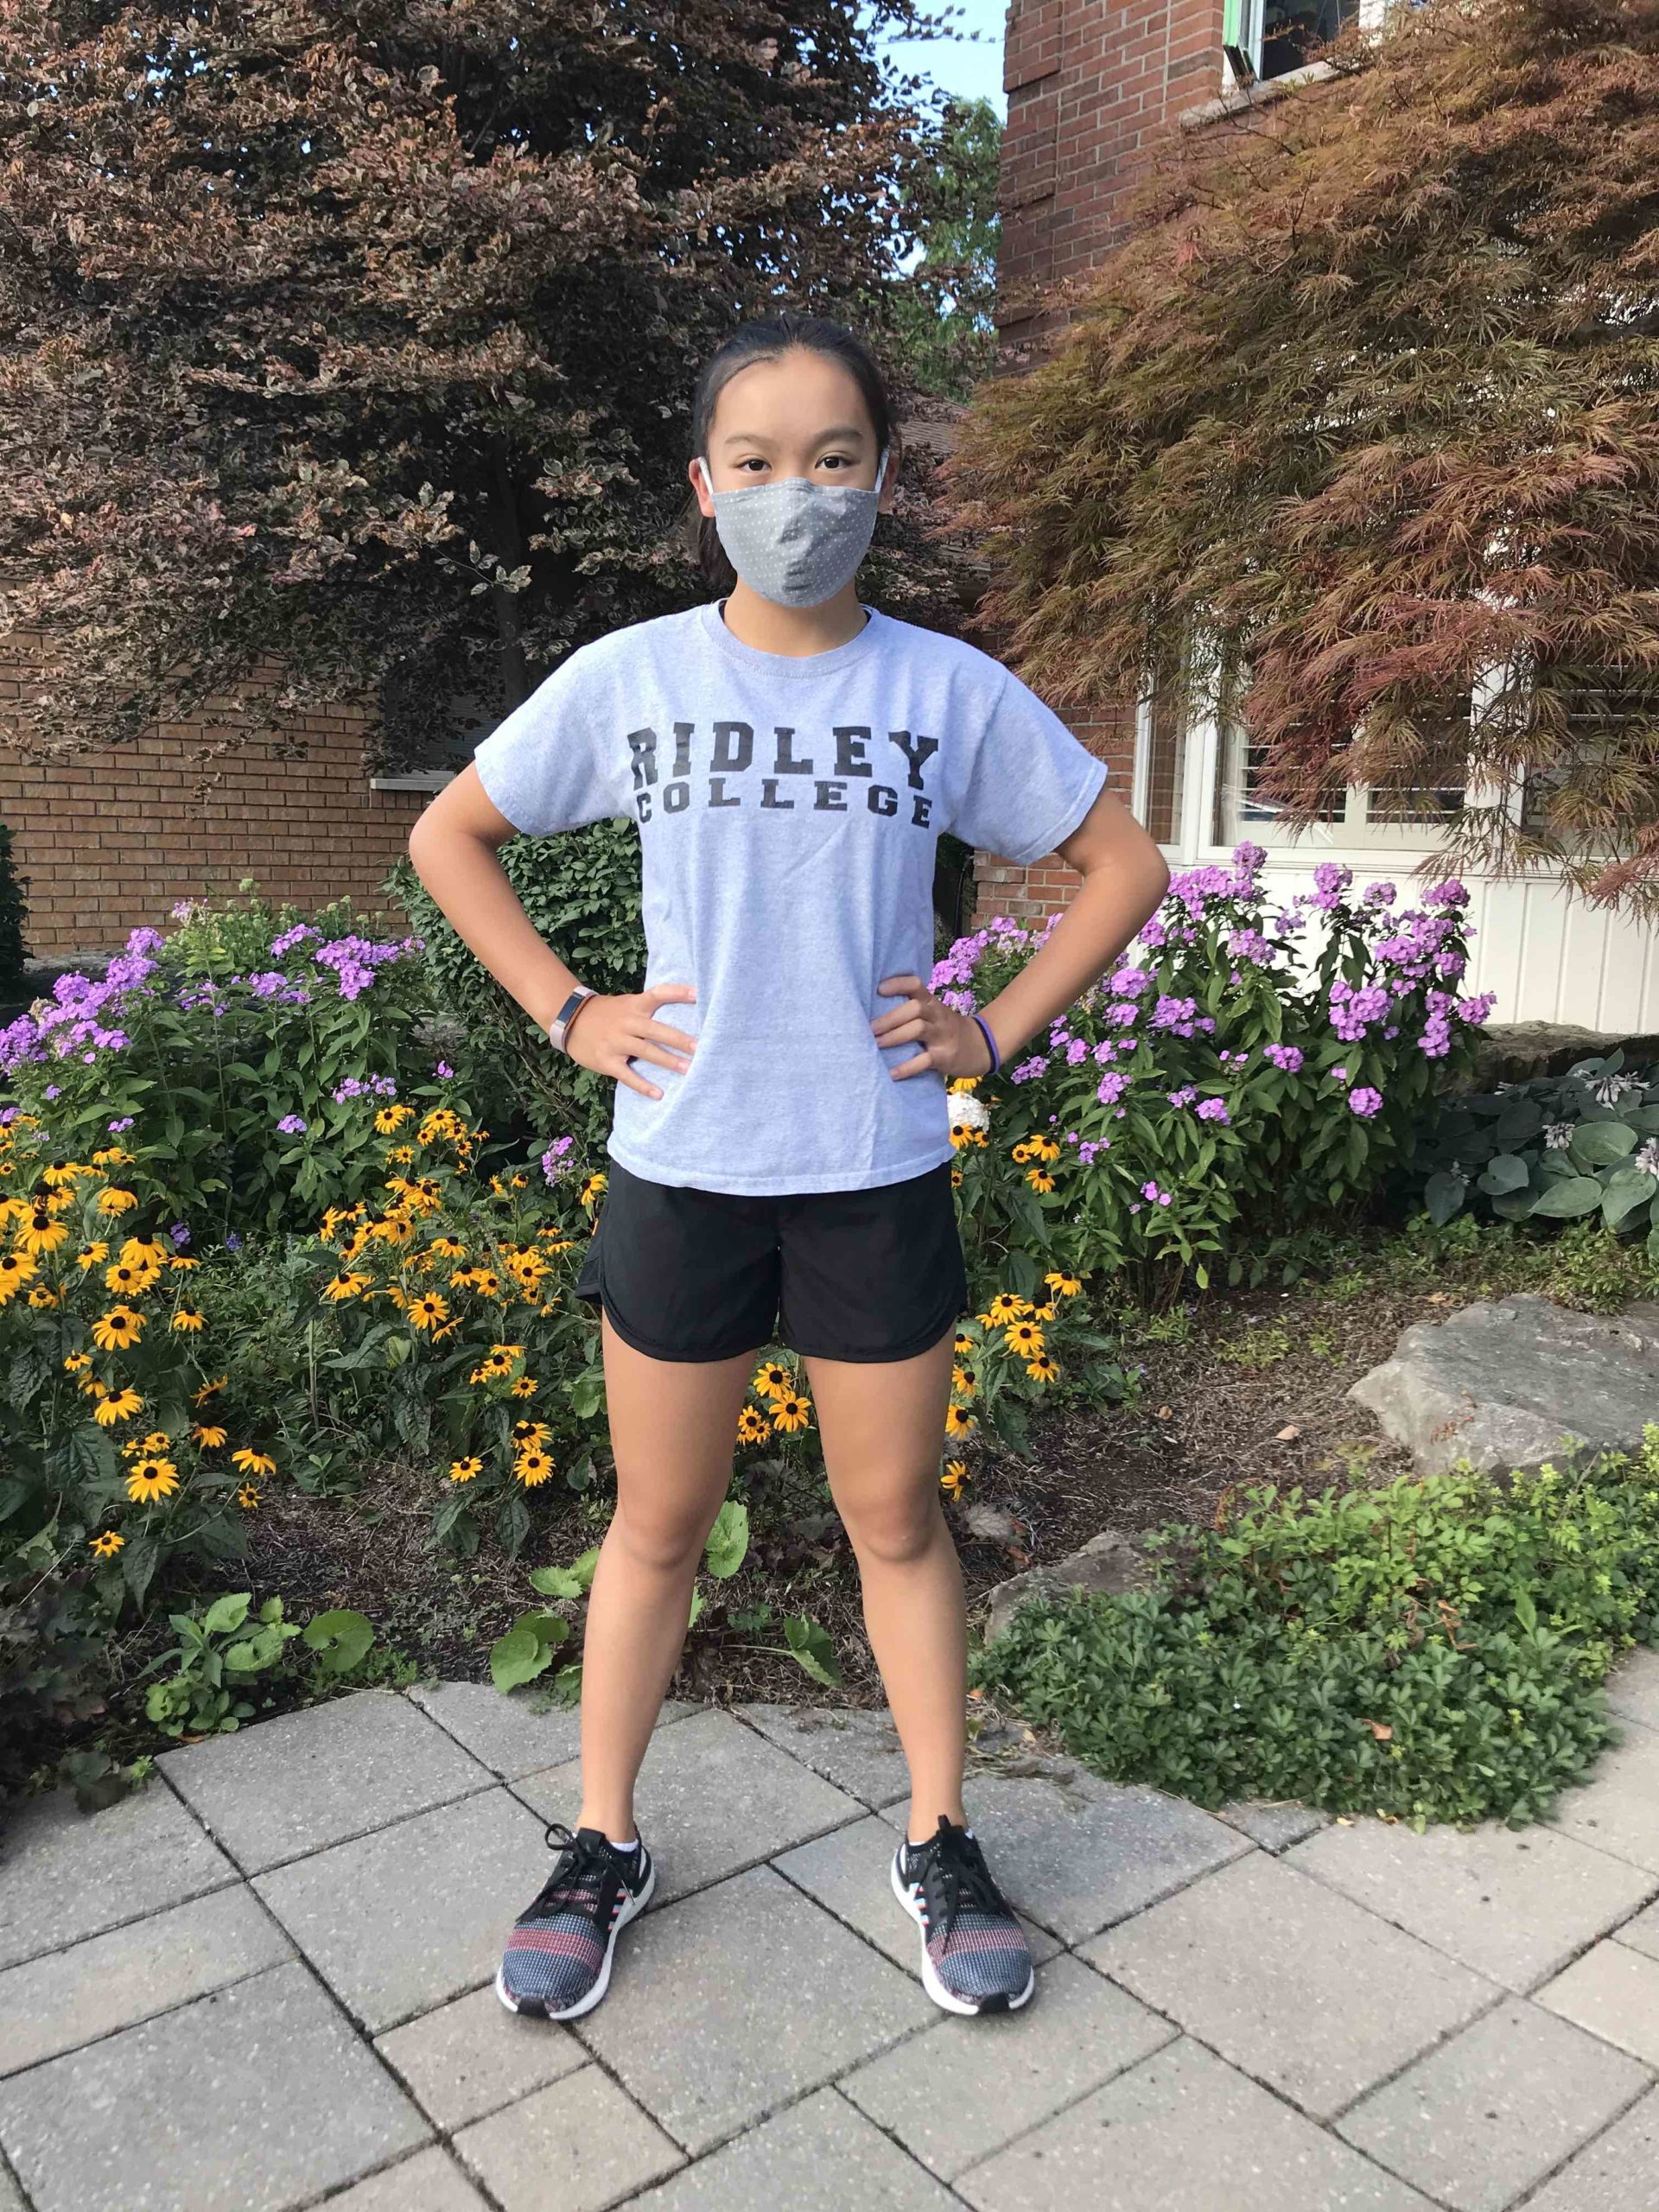 A female student in activewear poses with her mask.